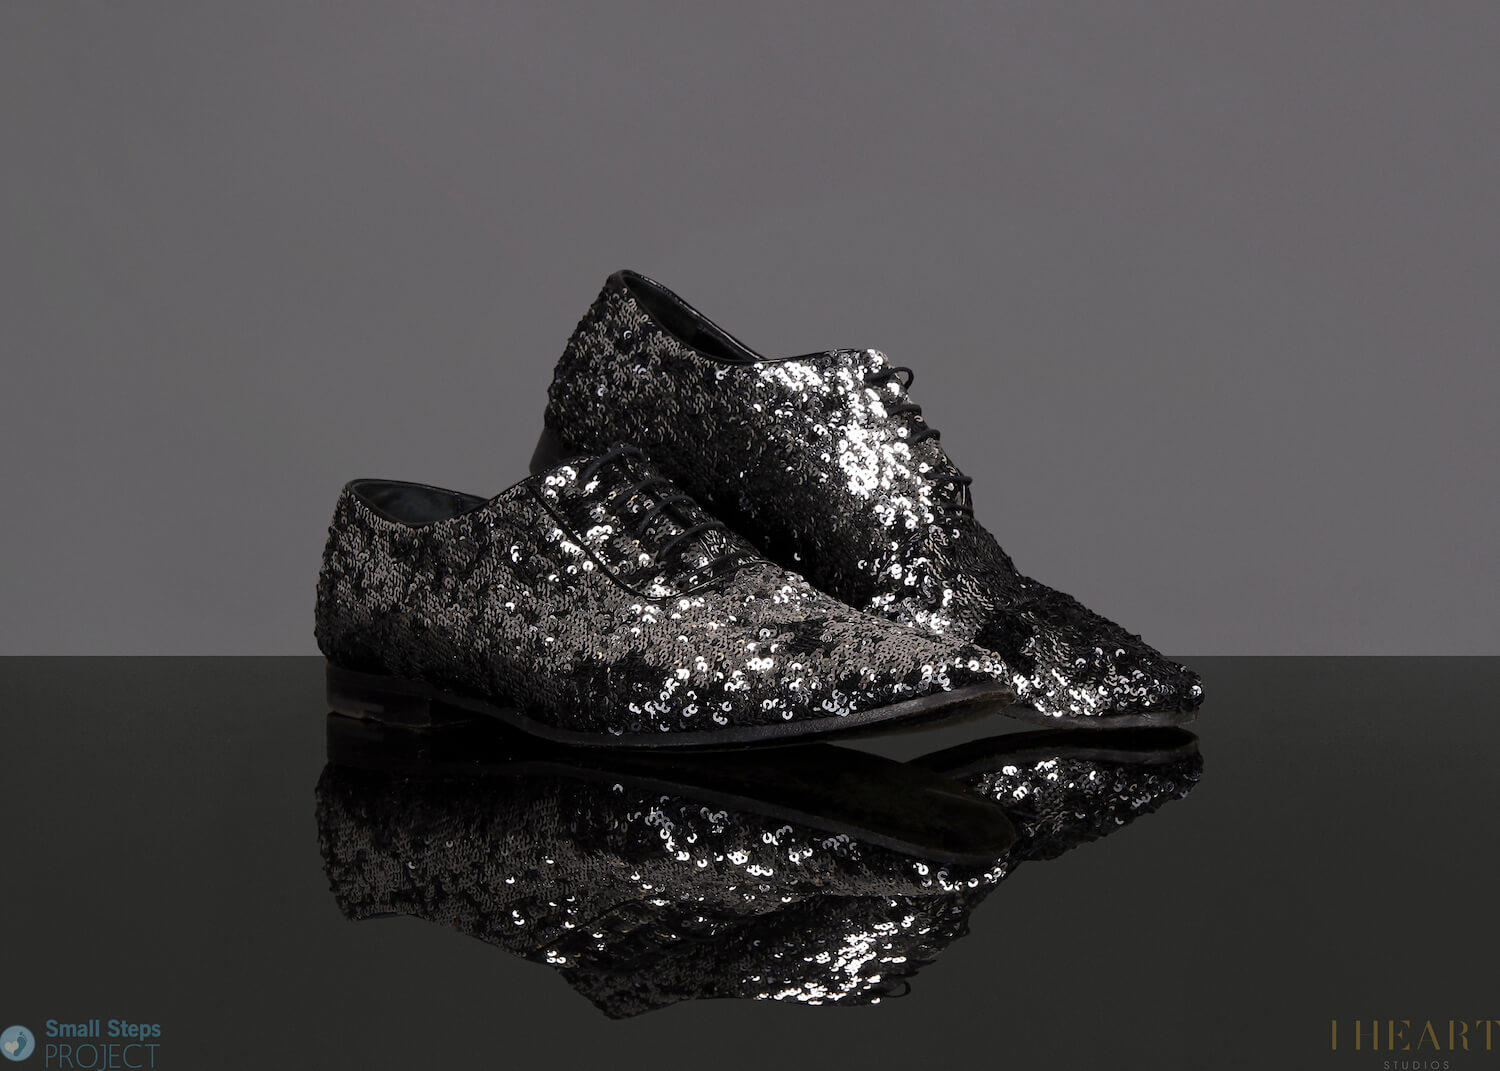 In 2014 he donated his infamous Louis Vuitton sparkly shoes. Sold for £2250